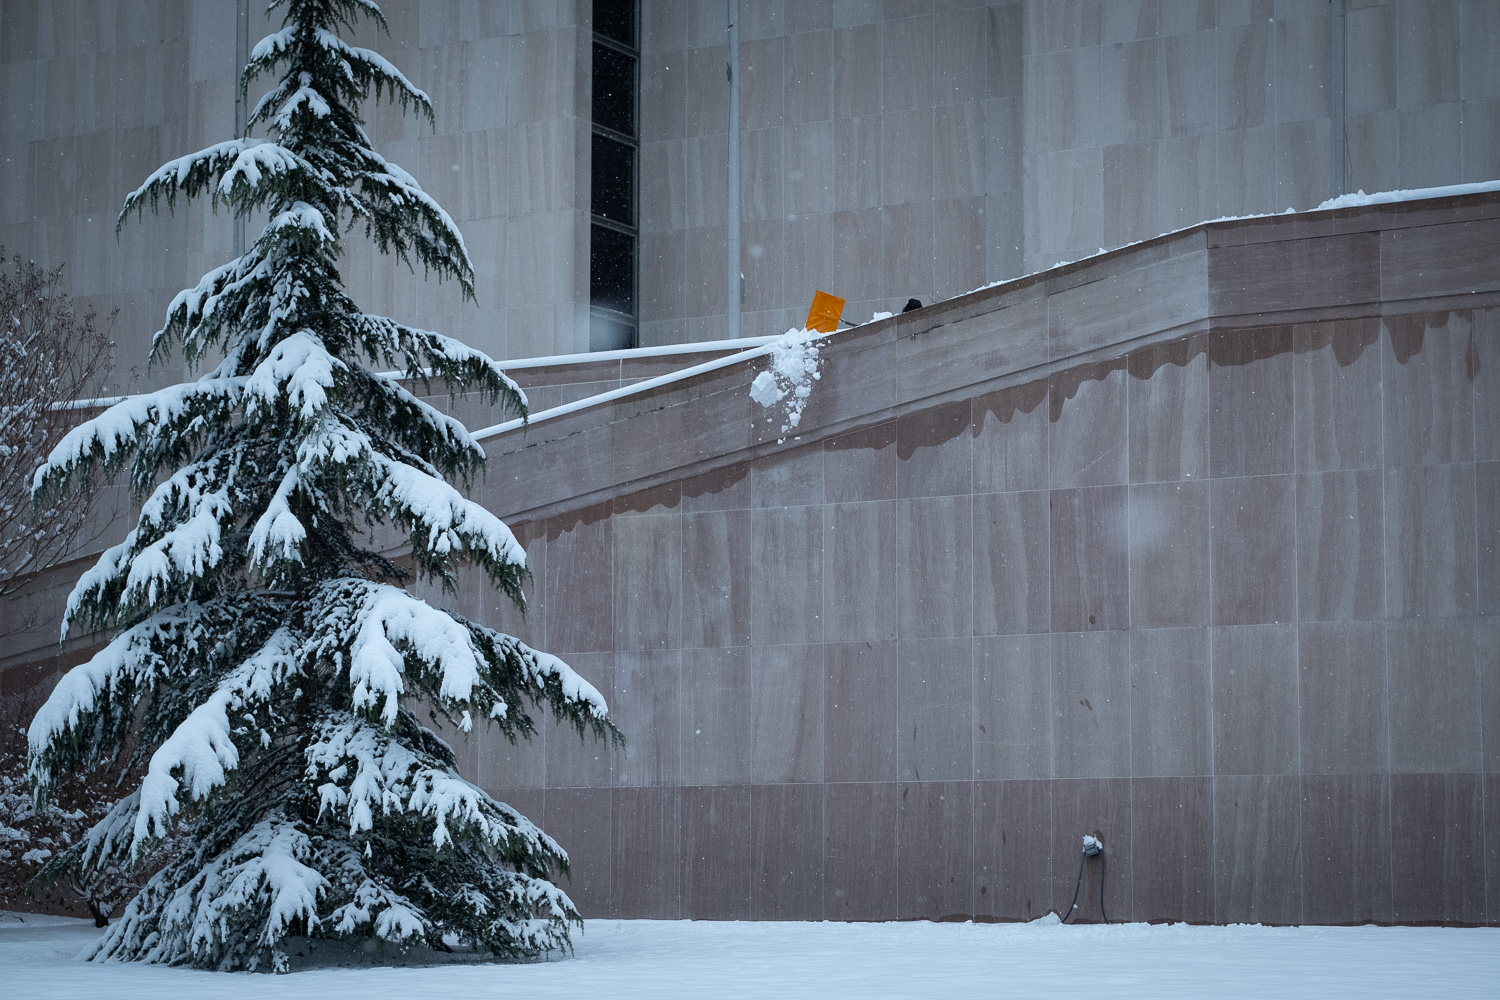 The movement caught my eye, then when I realized what was happening I knew I had my first real photo of the day. For me, the yellow snow shovel makes this image. Fujifilm X-Pro2, 50mm, 1/1500 @ f4, ISO 400.